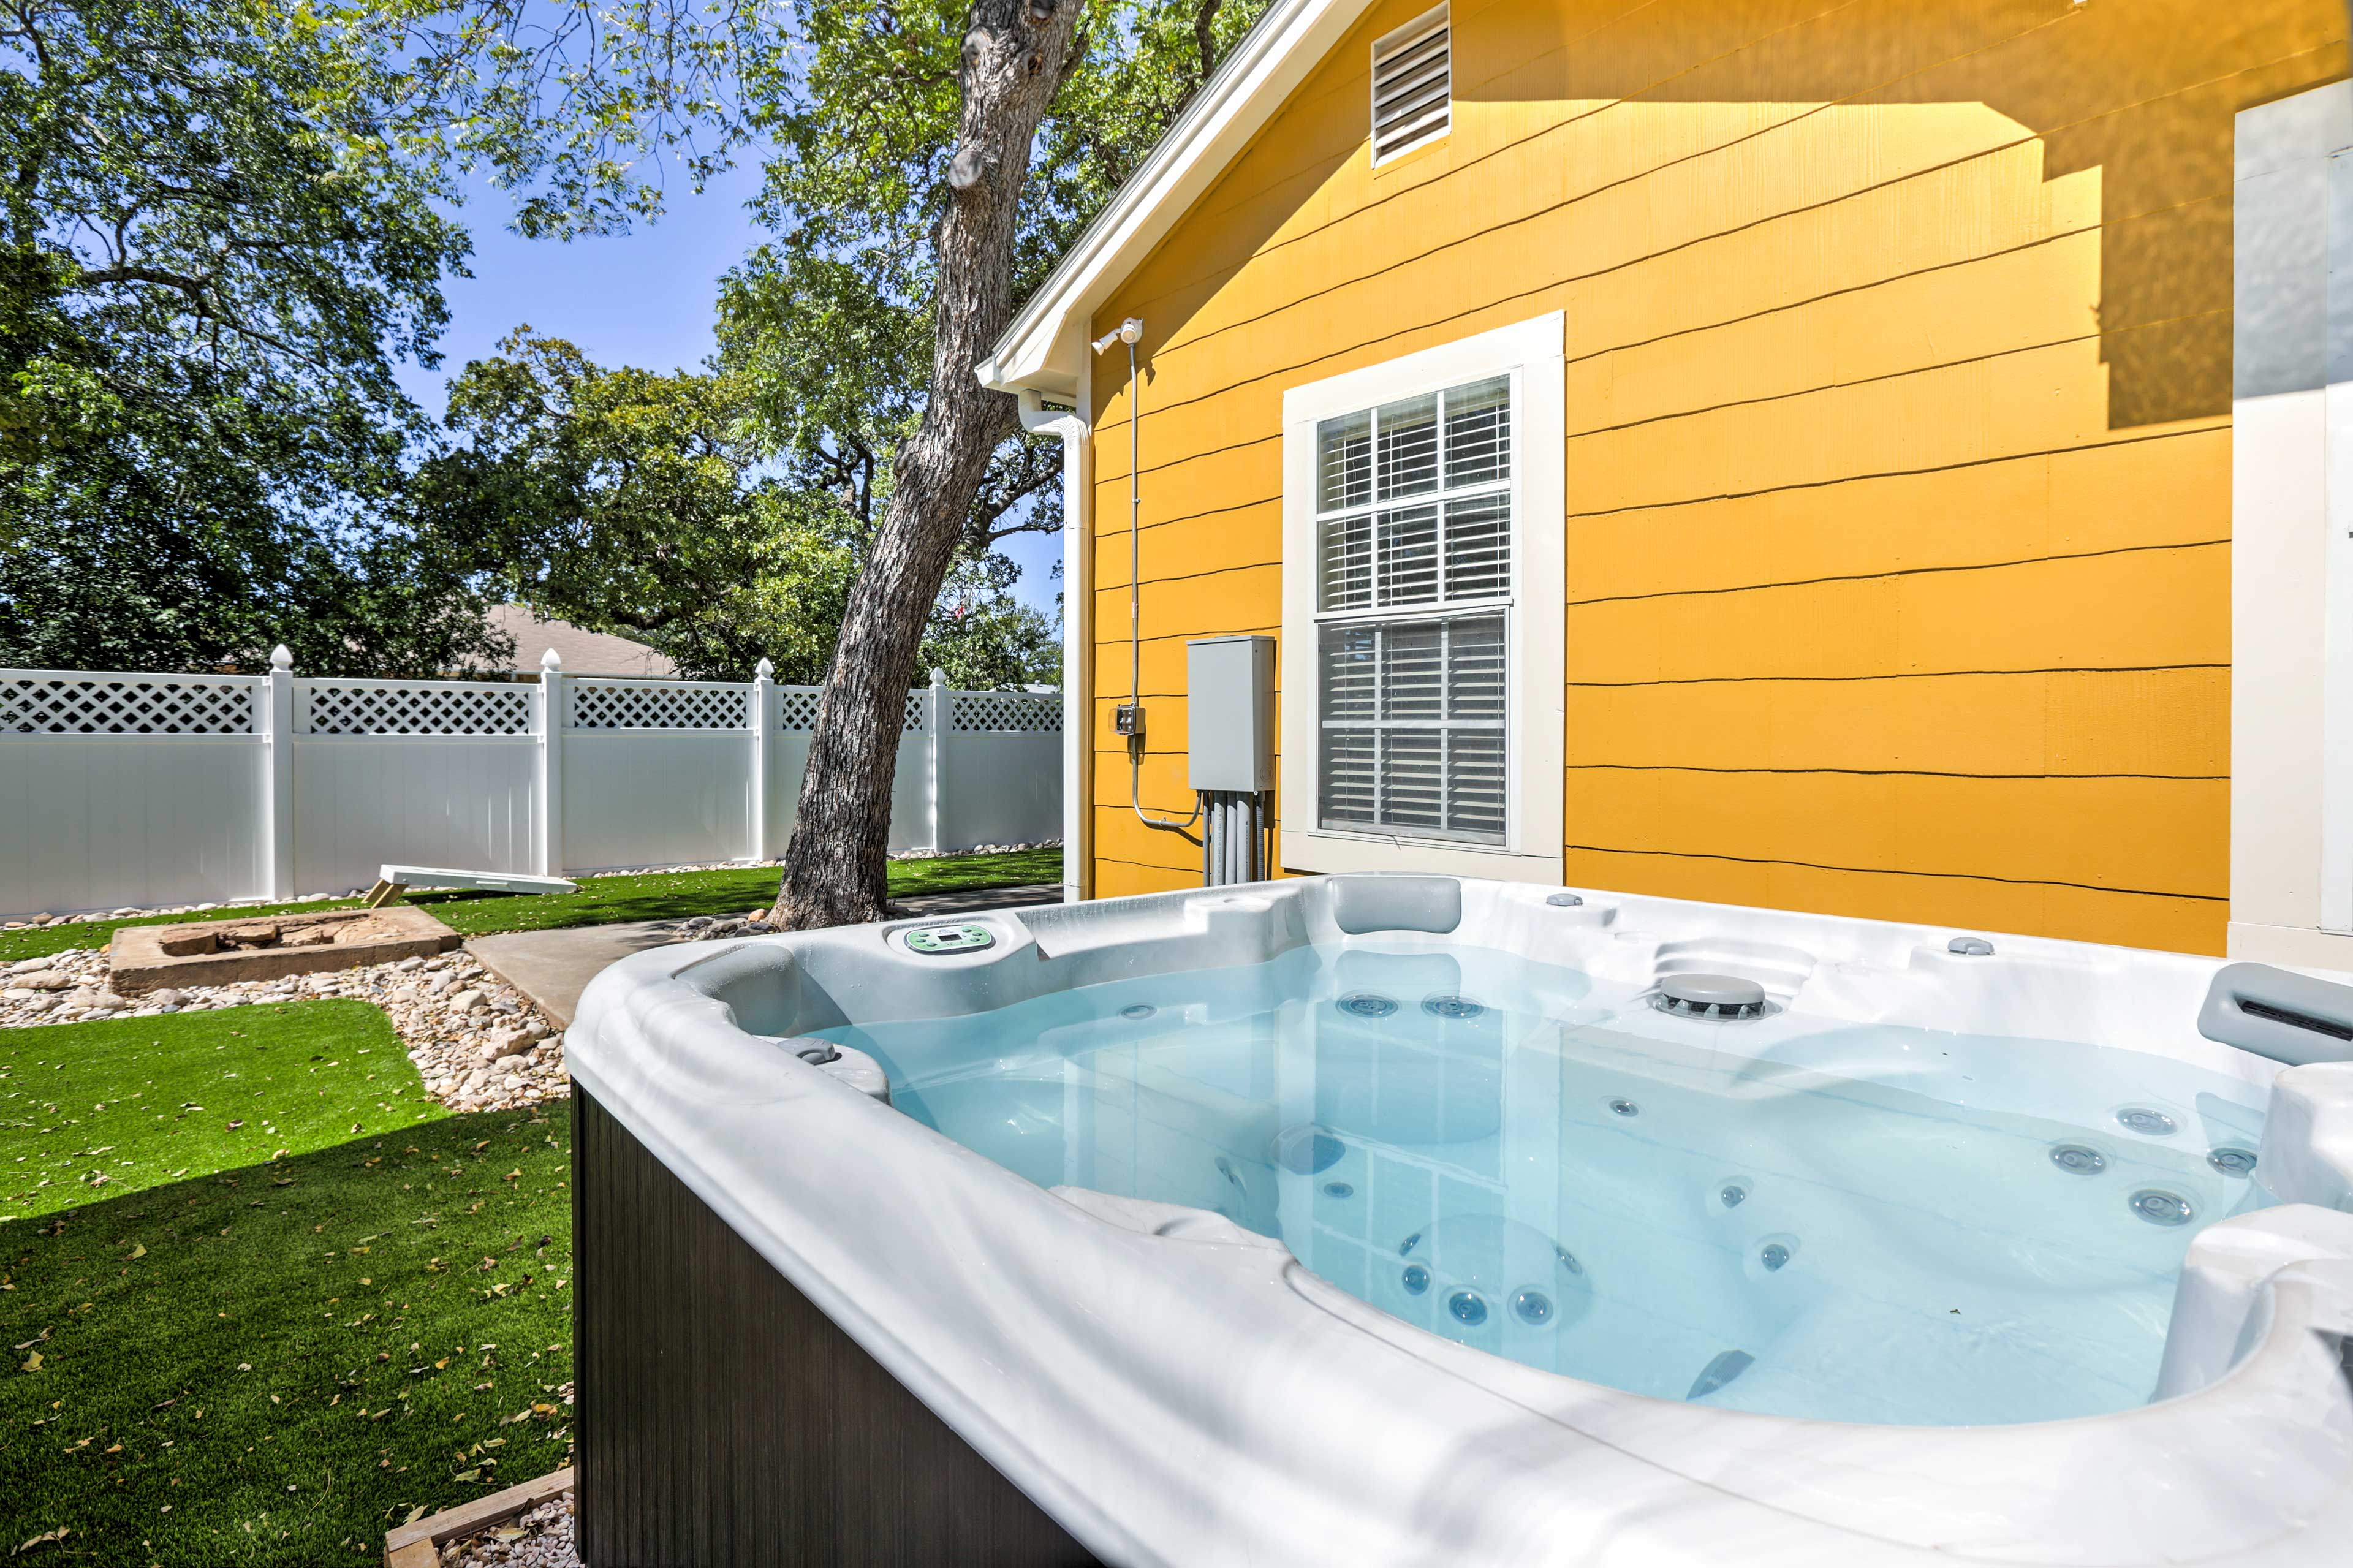 Slip into the private hot tub for a relaxing soak.